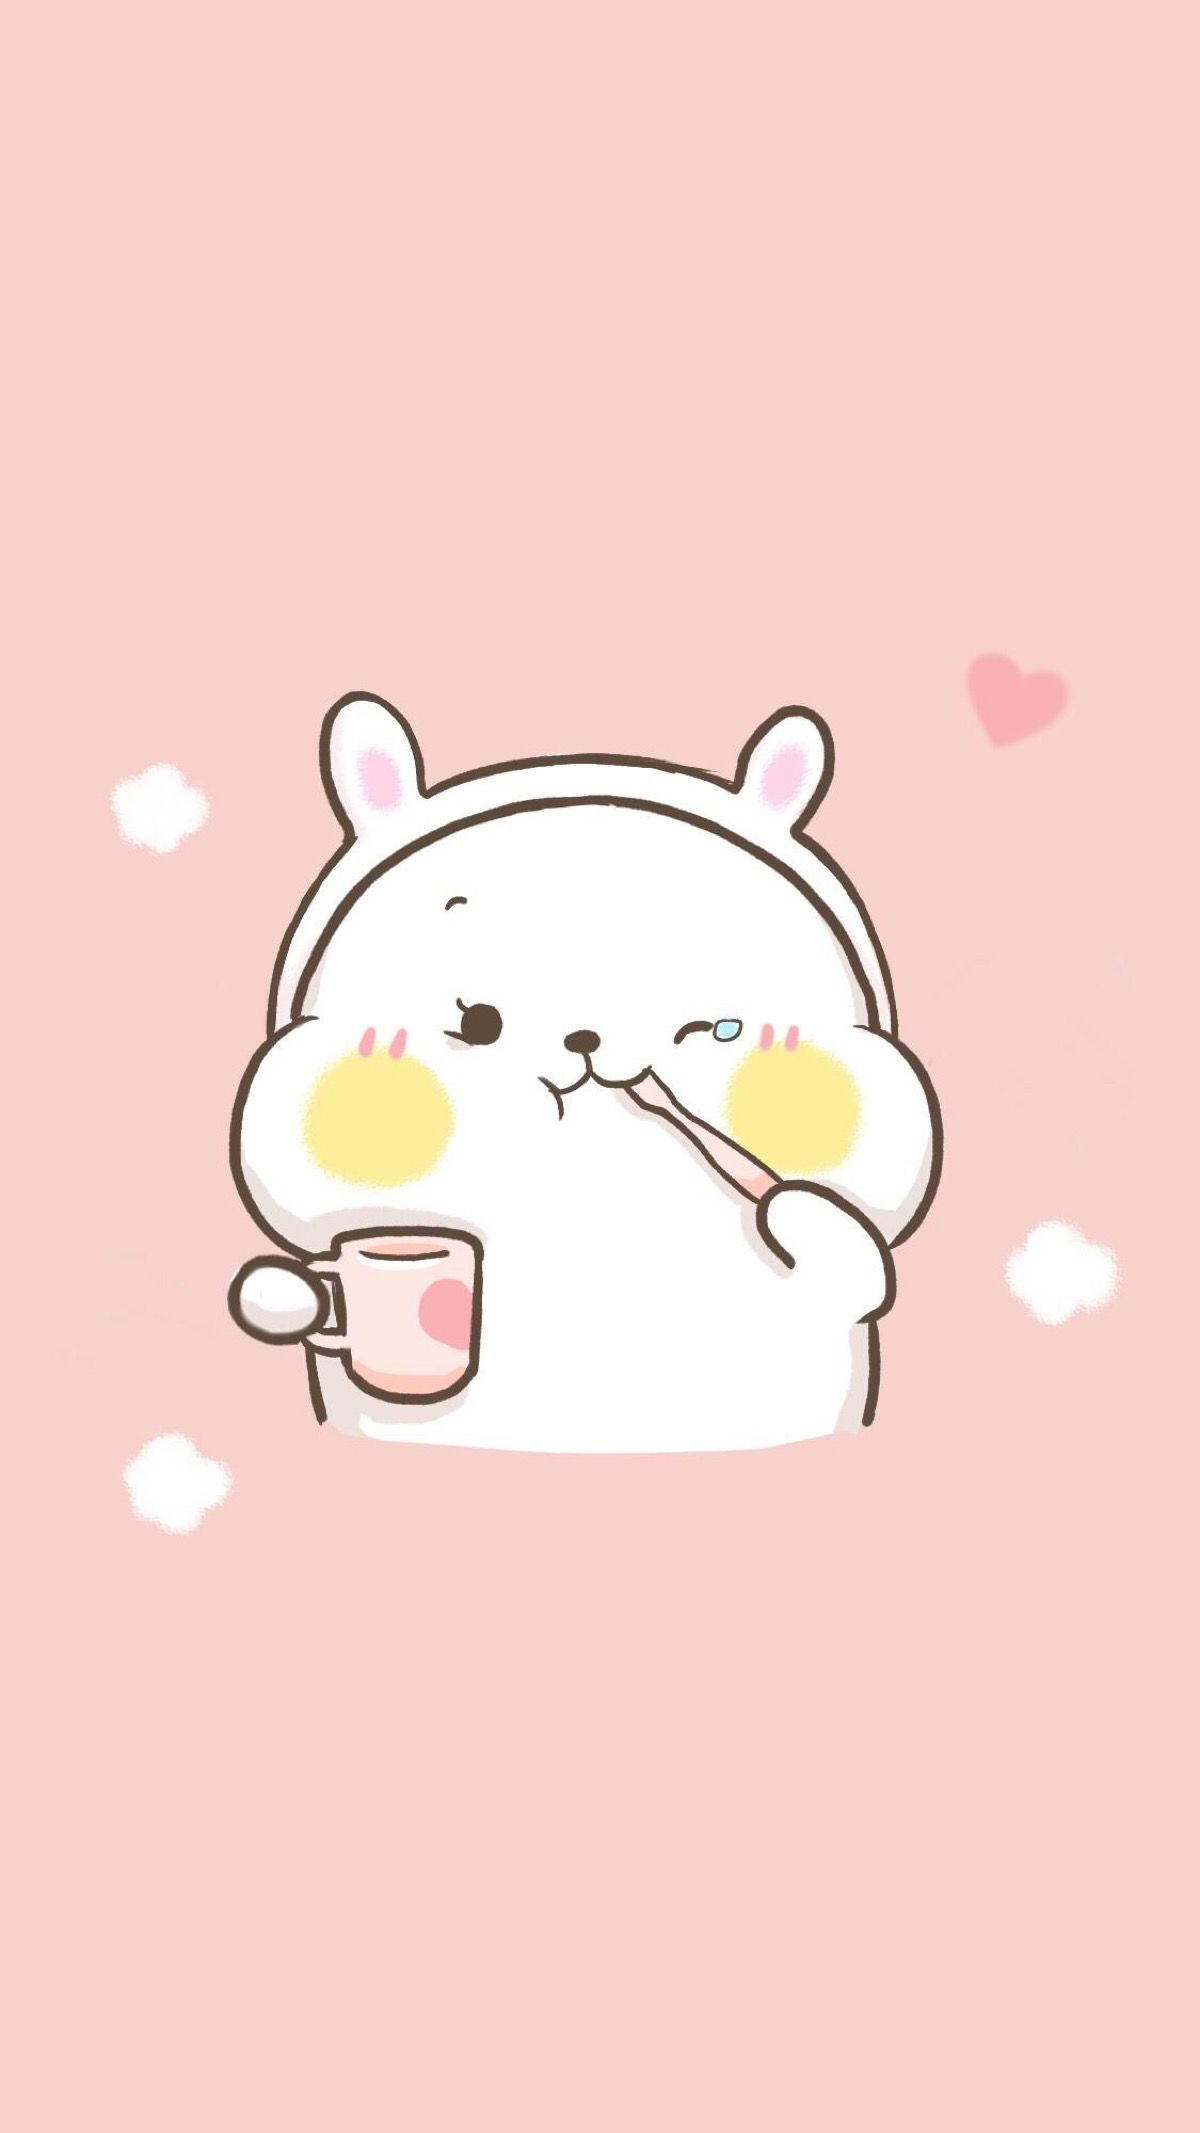 Image of: Tumblr kawaii bunny rabbit bear hamster cuteanimals pink pastel hearts cartoon animals wallpaper Pinterest Kawaii bunny rabbit bear hamster cuteanimals pink pastel